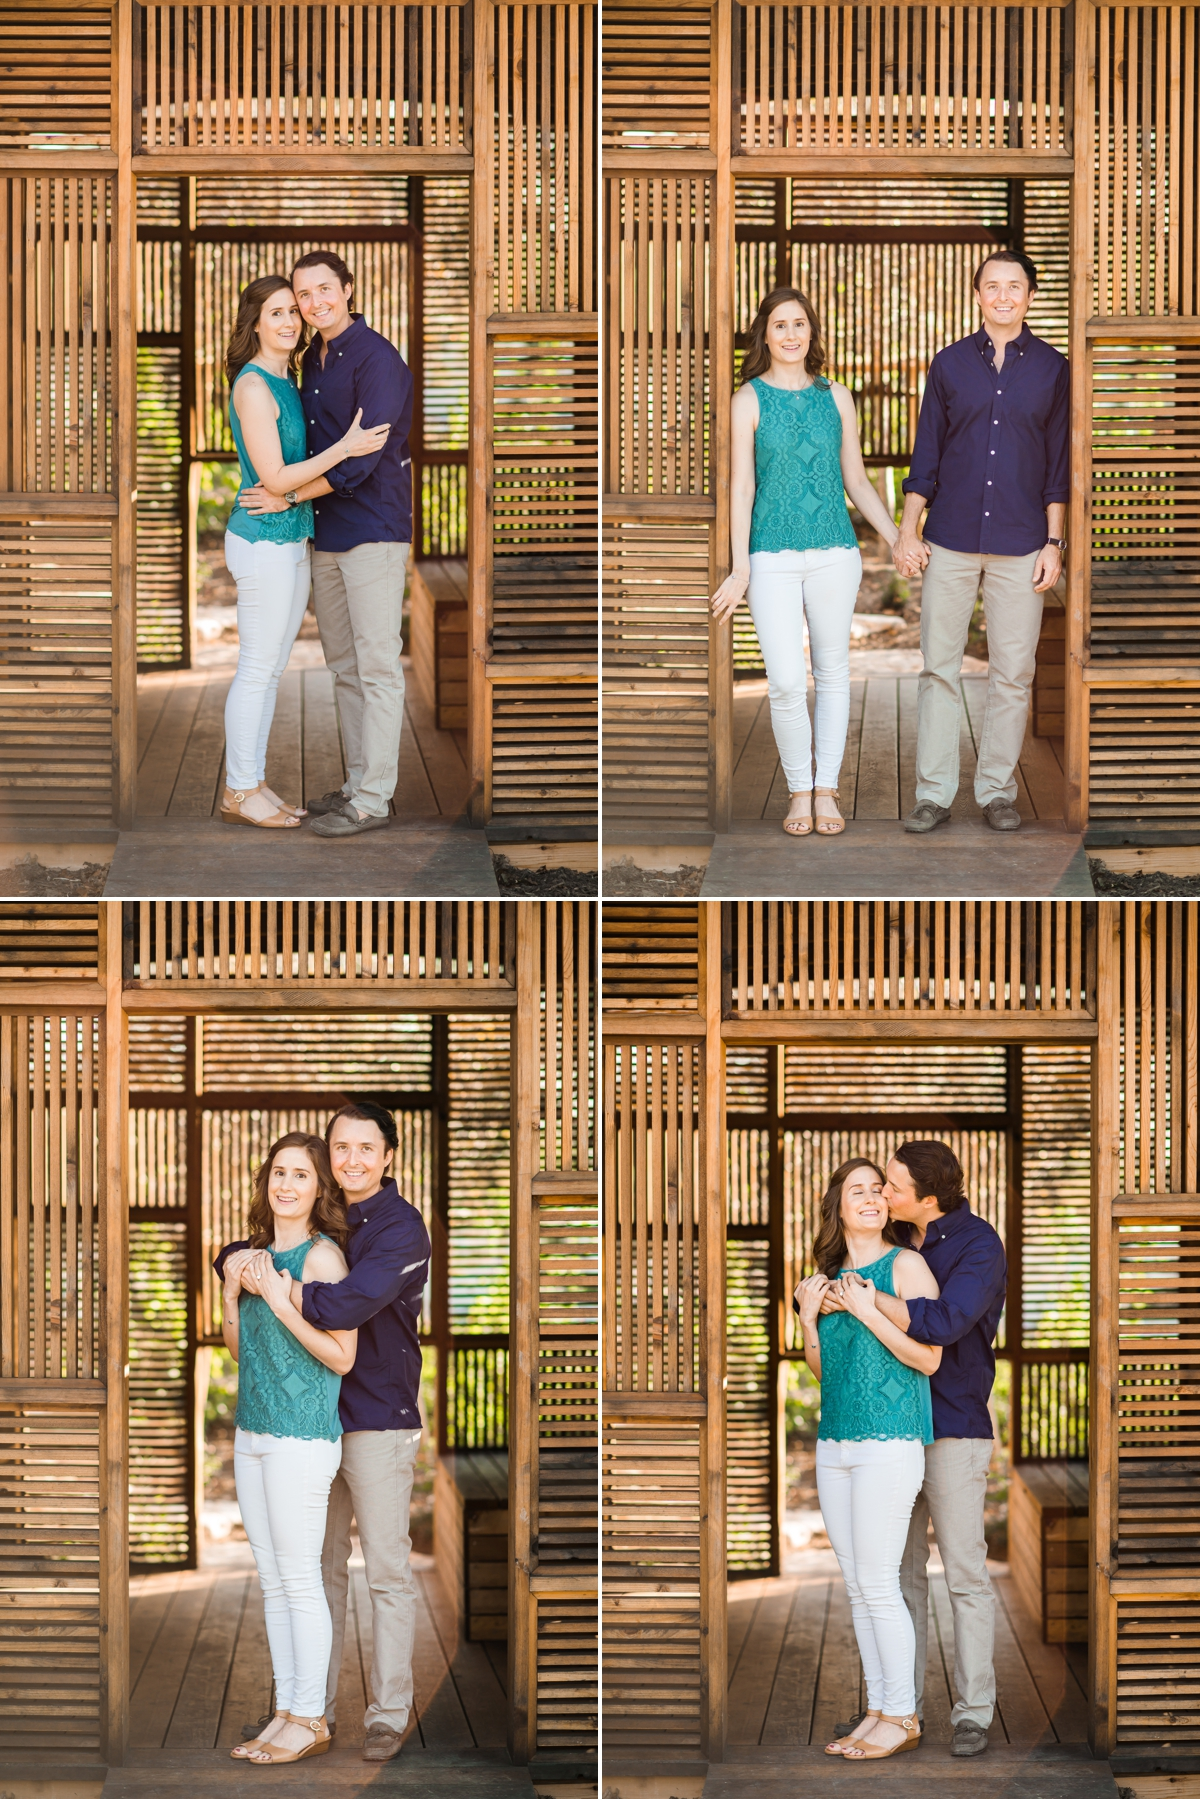 Couple posing in wooden structure at Houston Botanic Garden